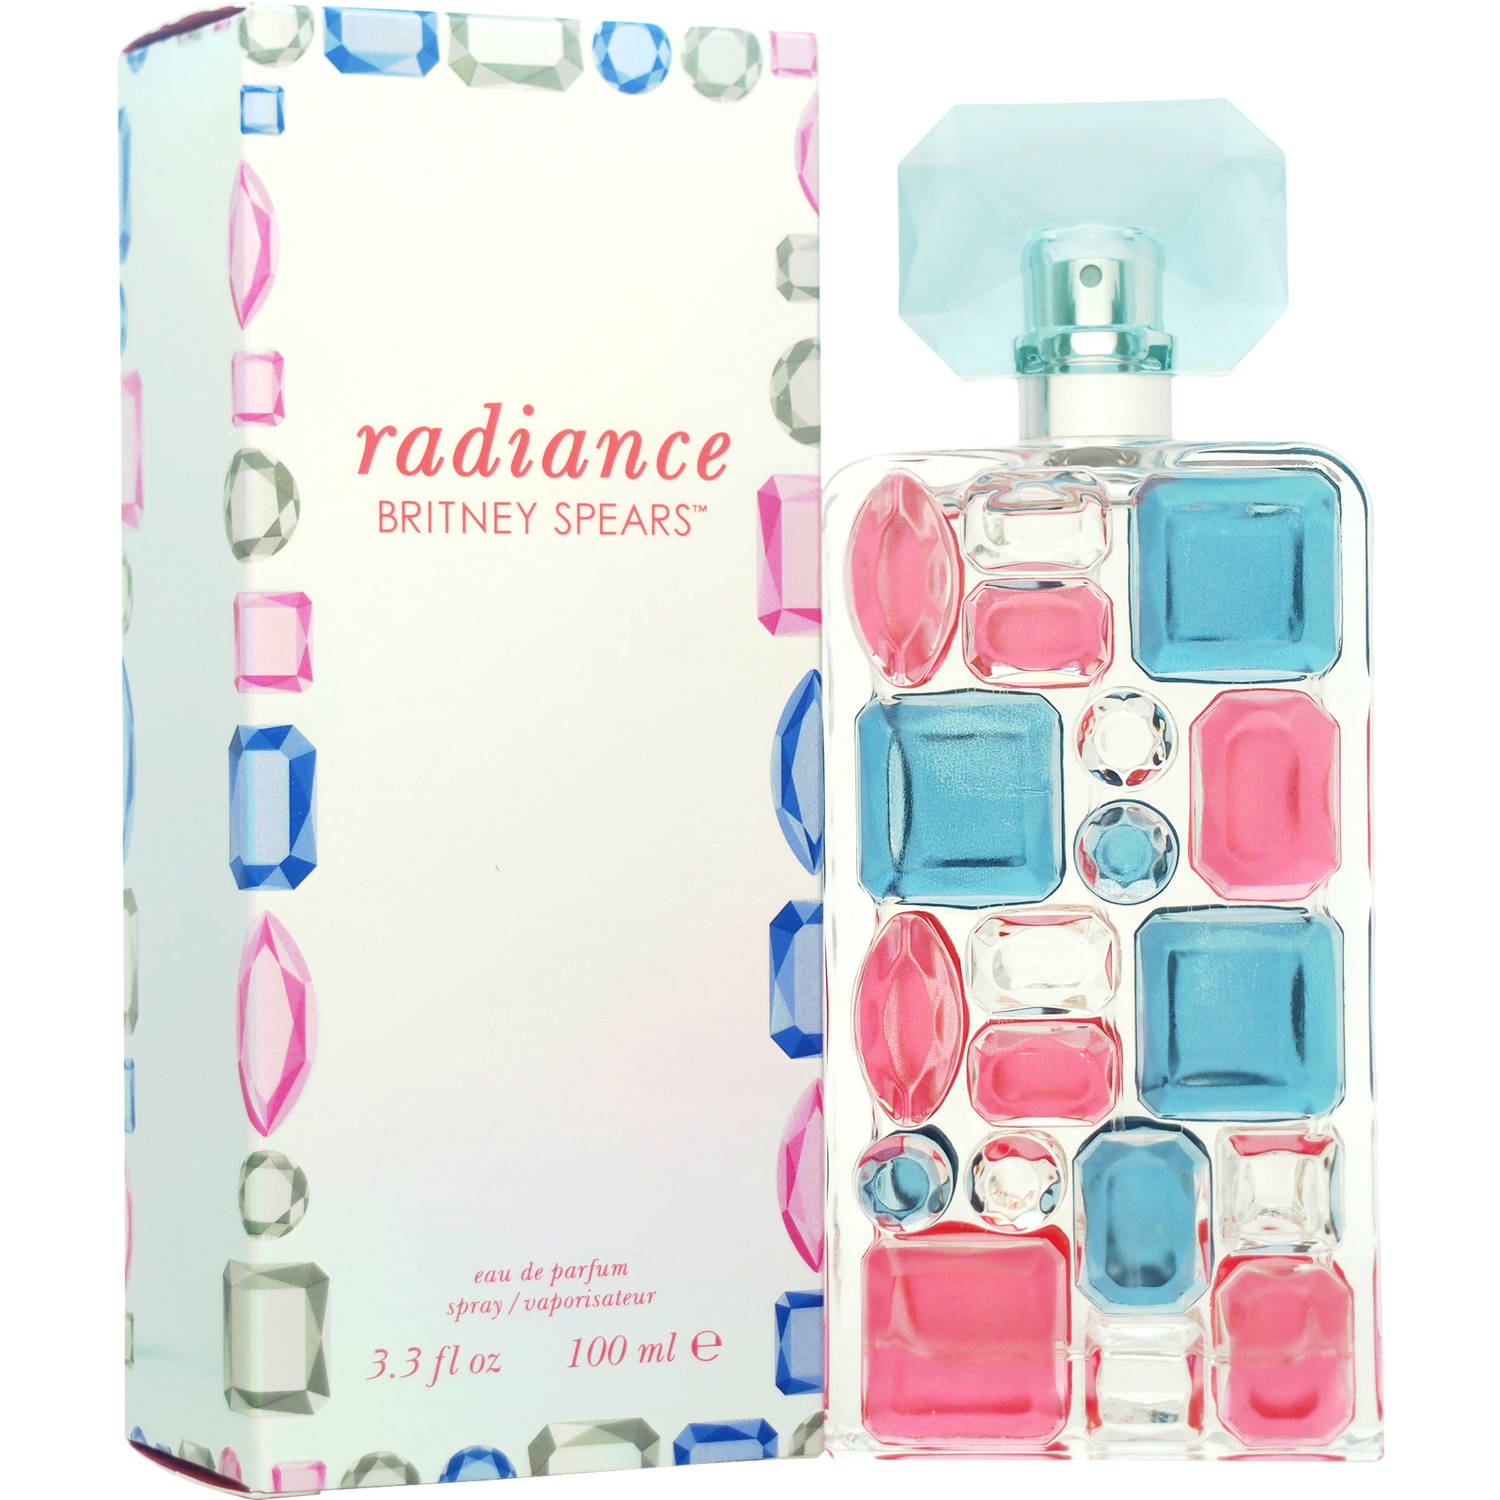 Britney Spears Radiance Women's EDP Spray, 3.3 fl oz